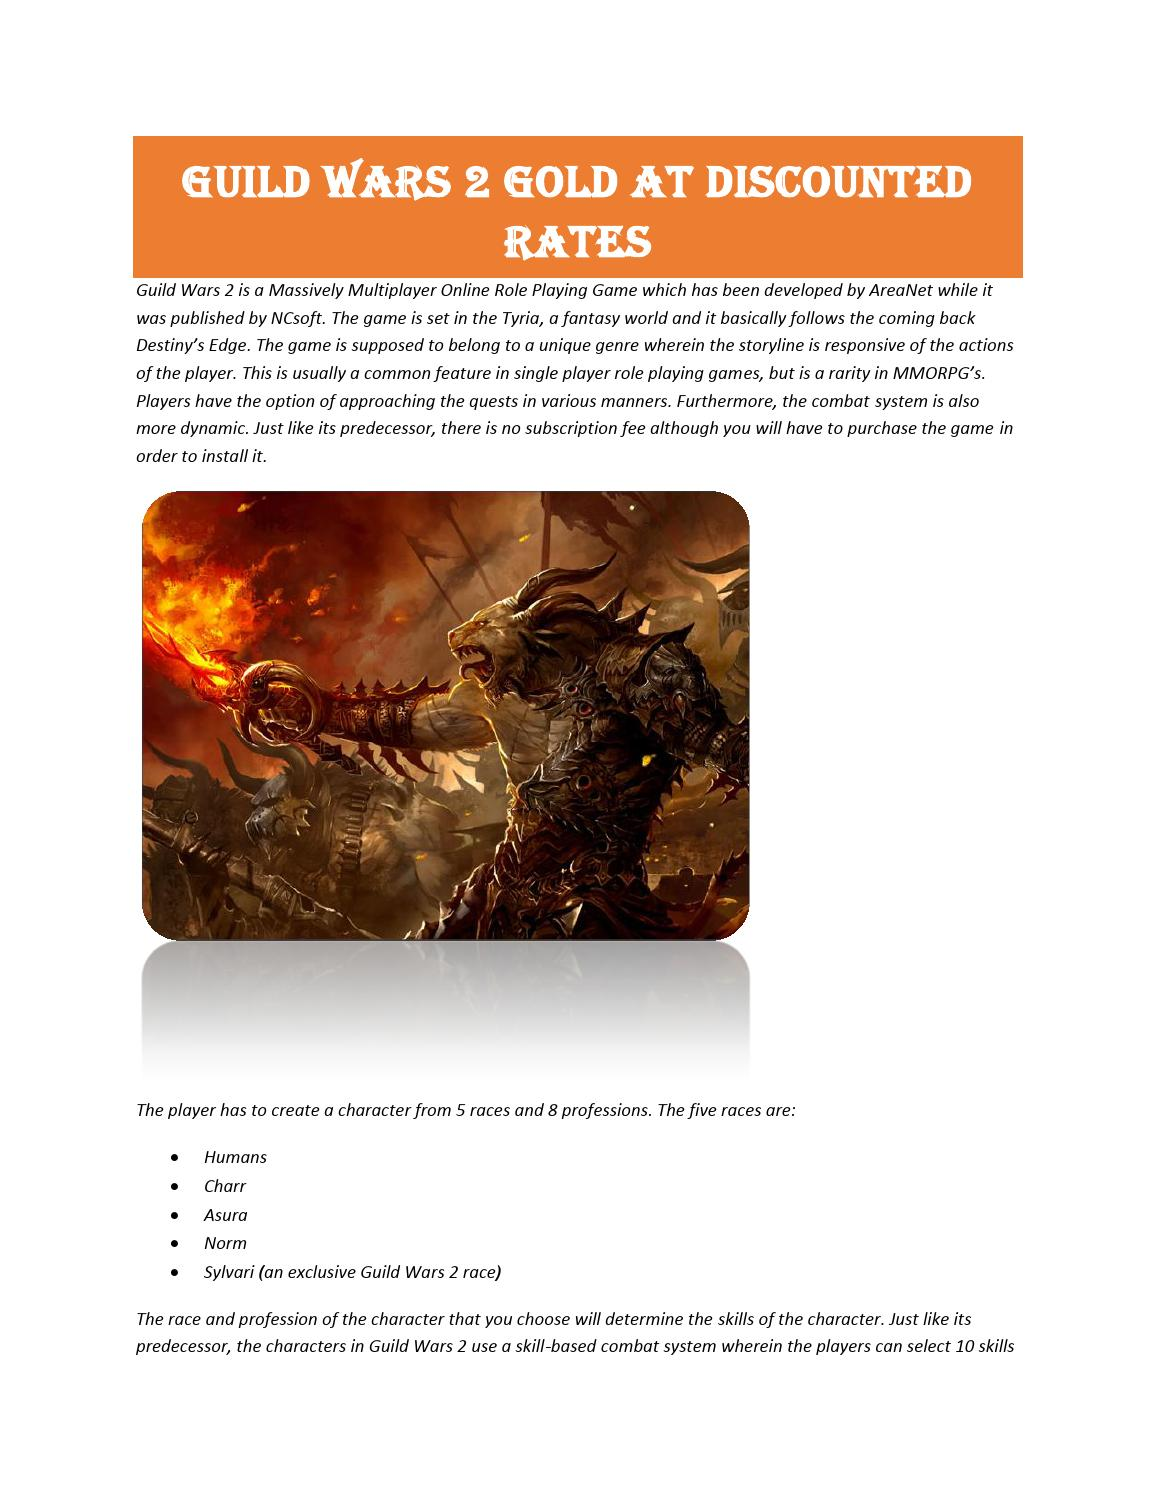 Guild wars 2 gold at discounted rates by Alexander Queen - issuu